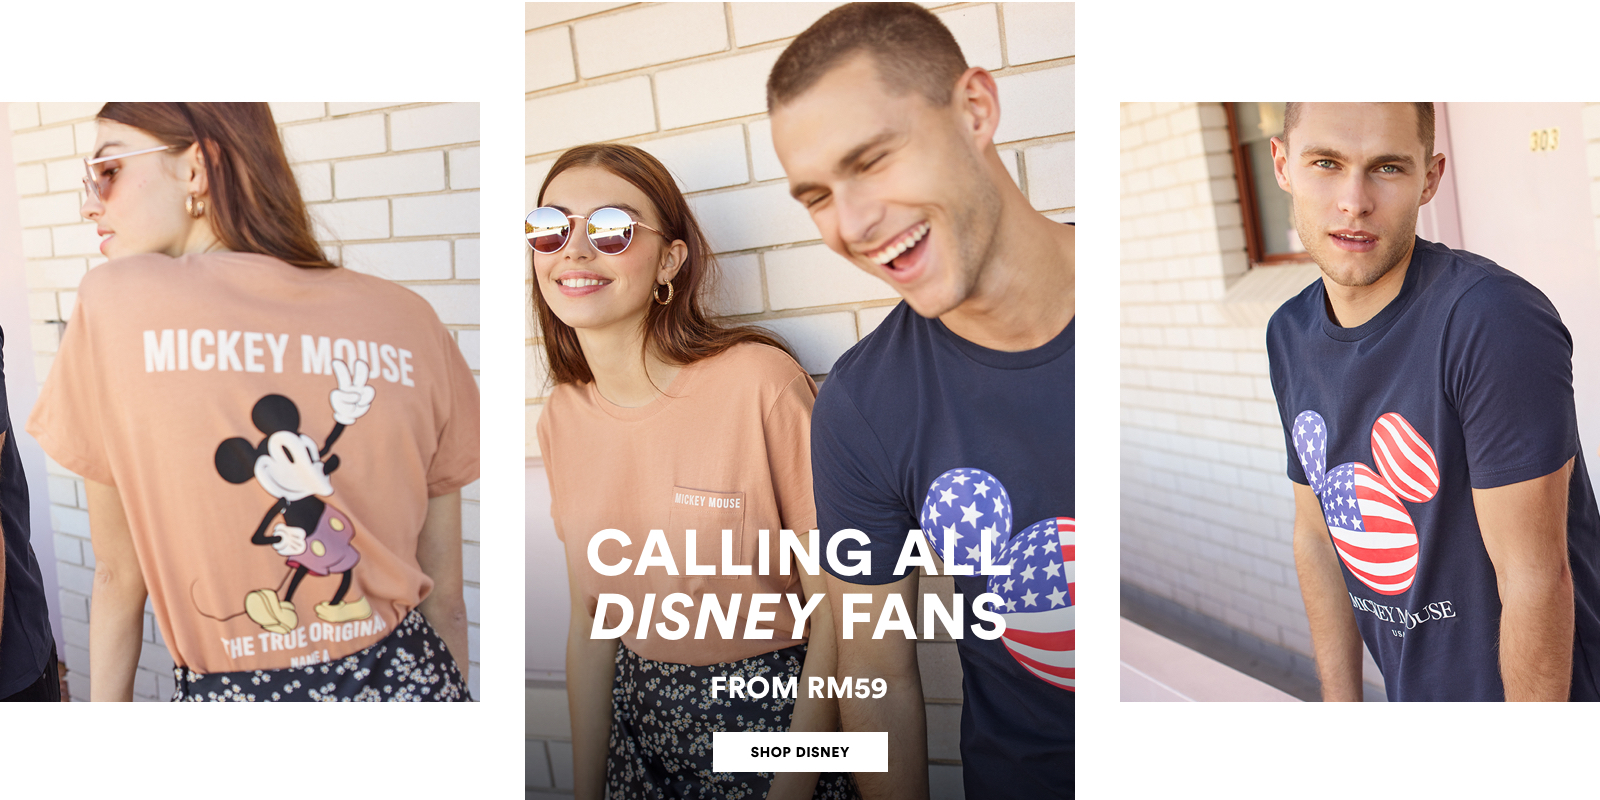 Calling all Disney fans. From $19.99. Click to Shop Disney.